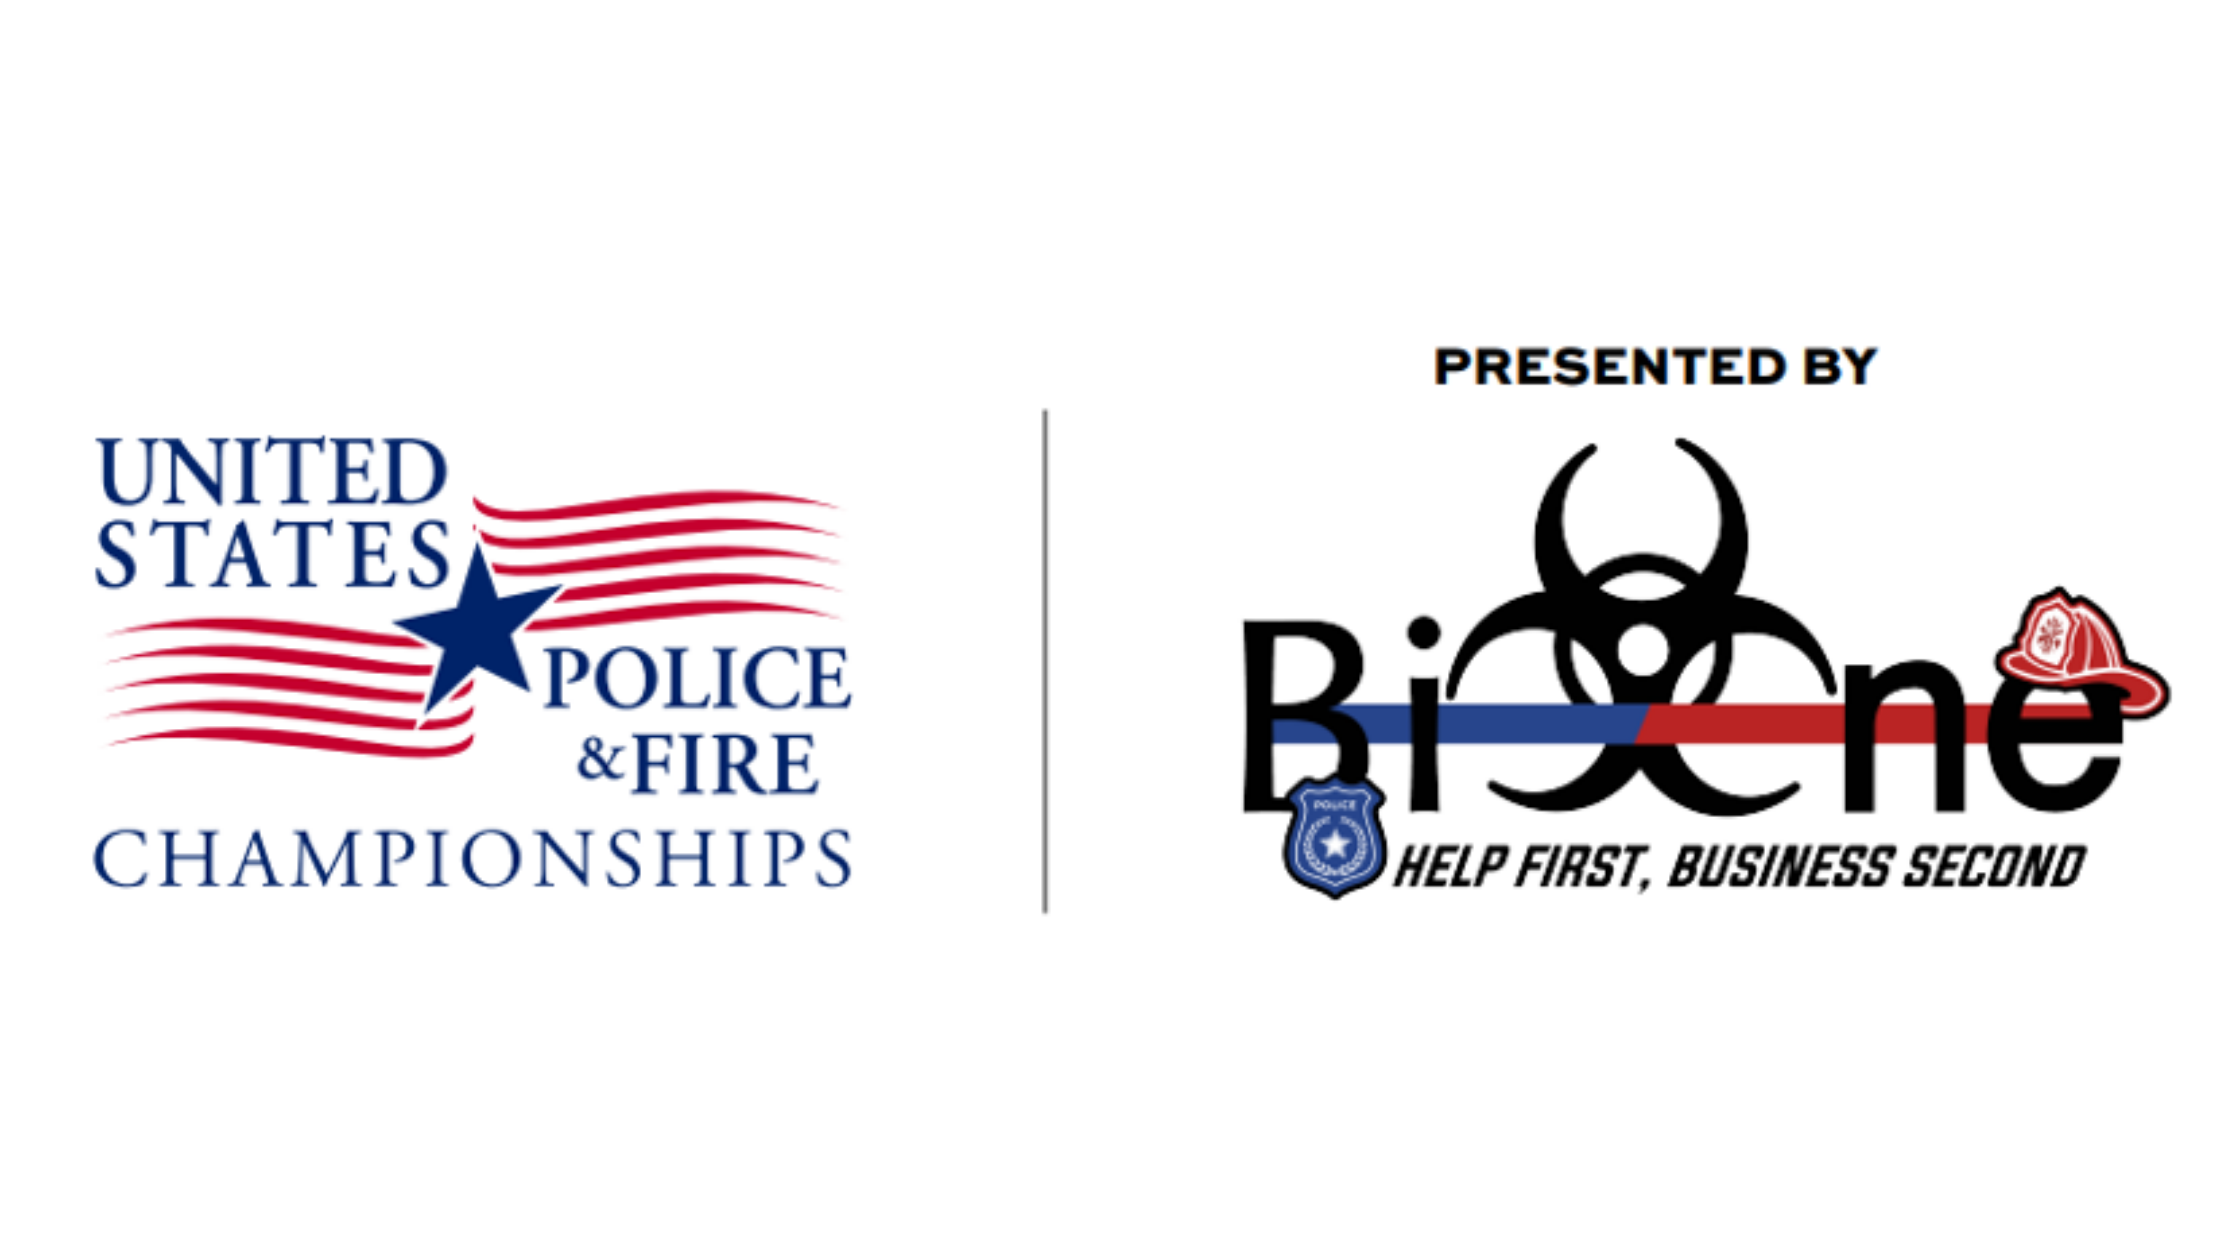 Update on the 2021 United States Police and Fire Championships